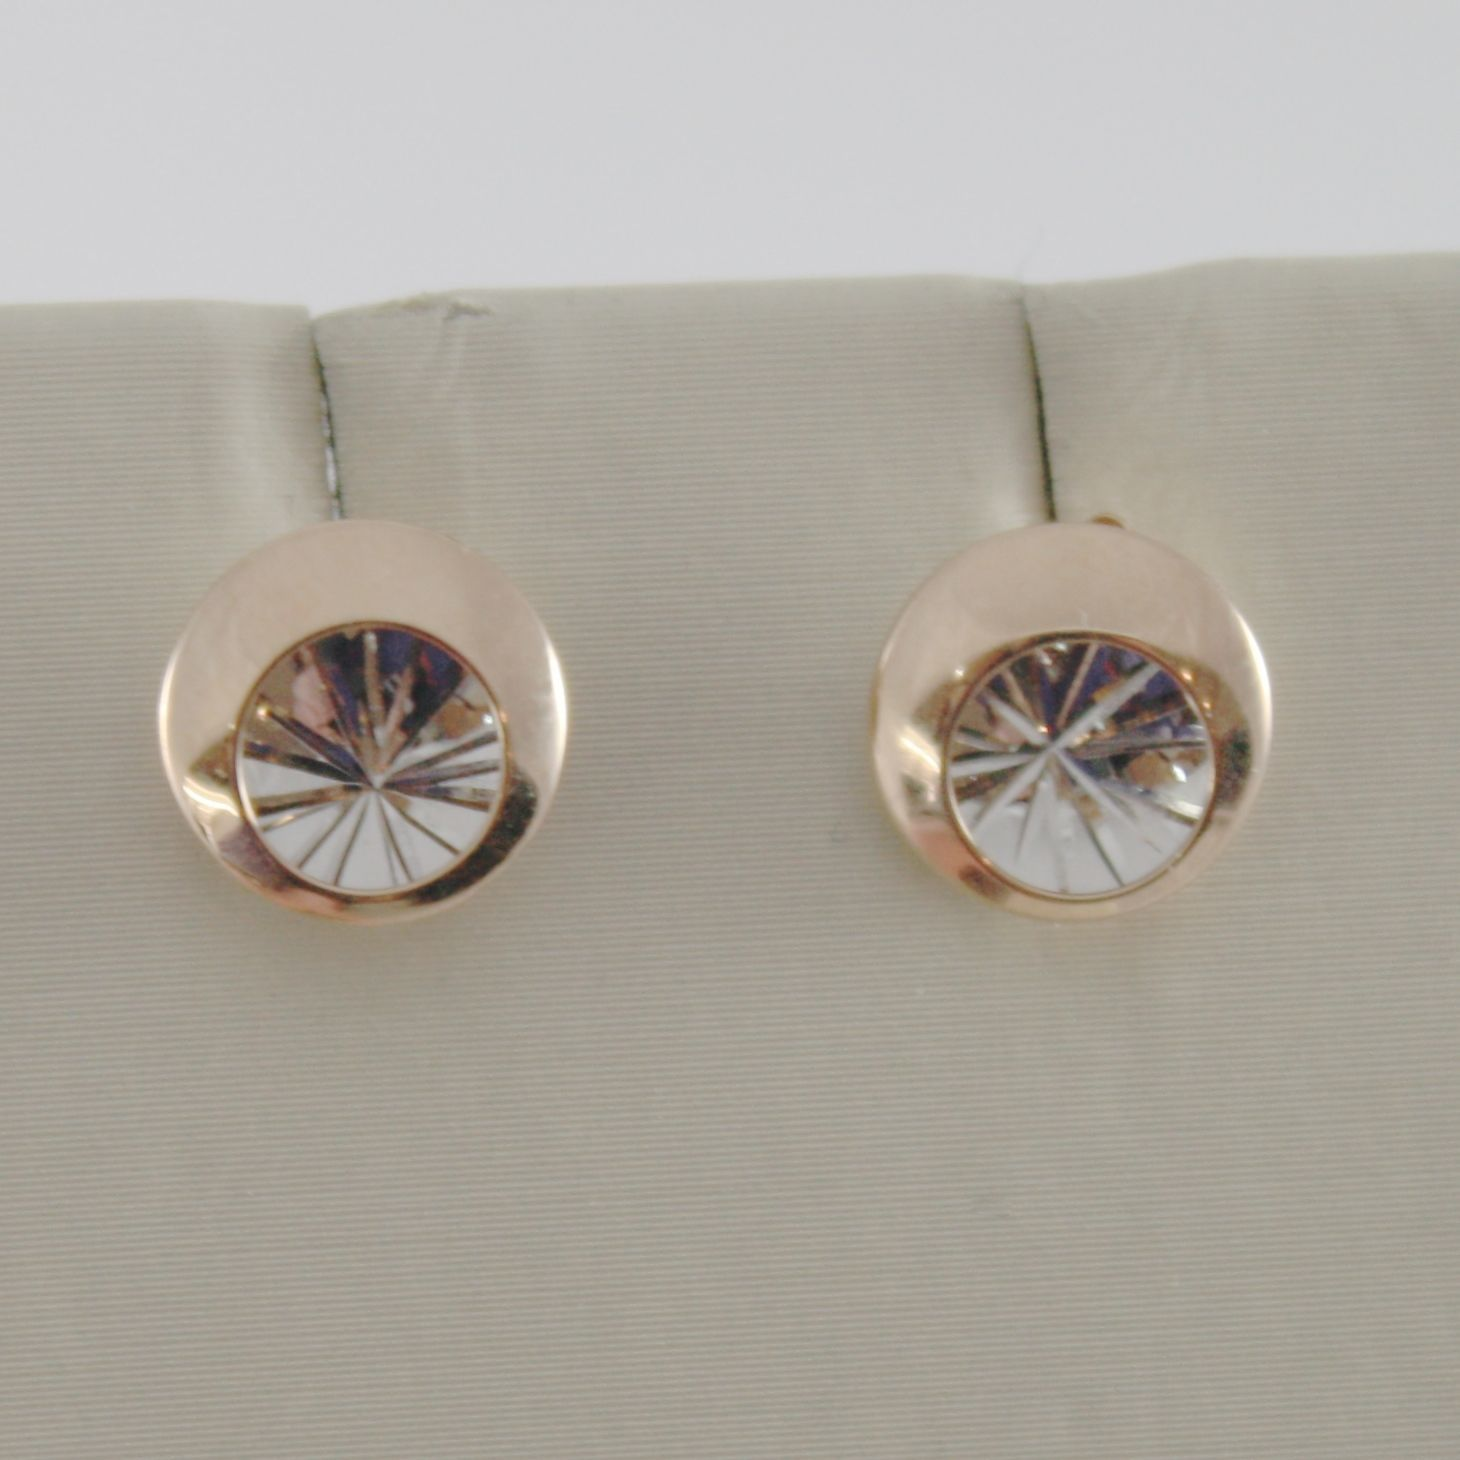 18K WHITE PINK GOLD ROUND EARRINGS FINELY WORKED, DOUBLE RAYS STAR MADE IN ITALY